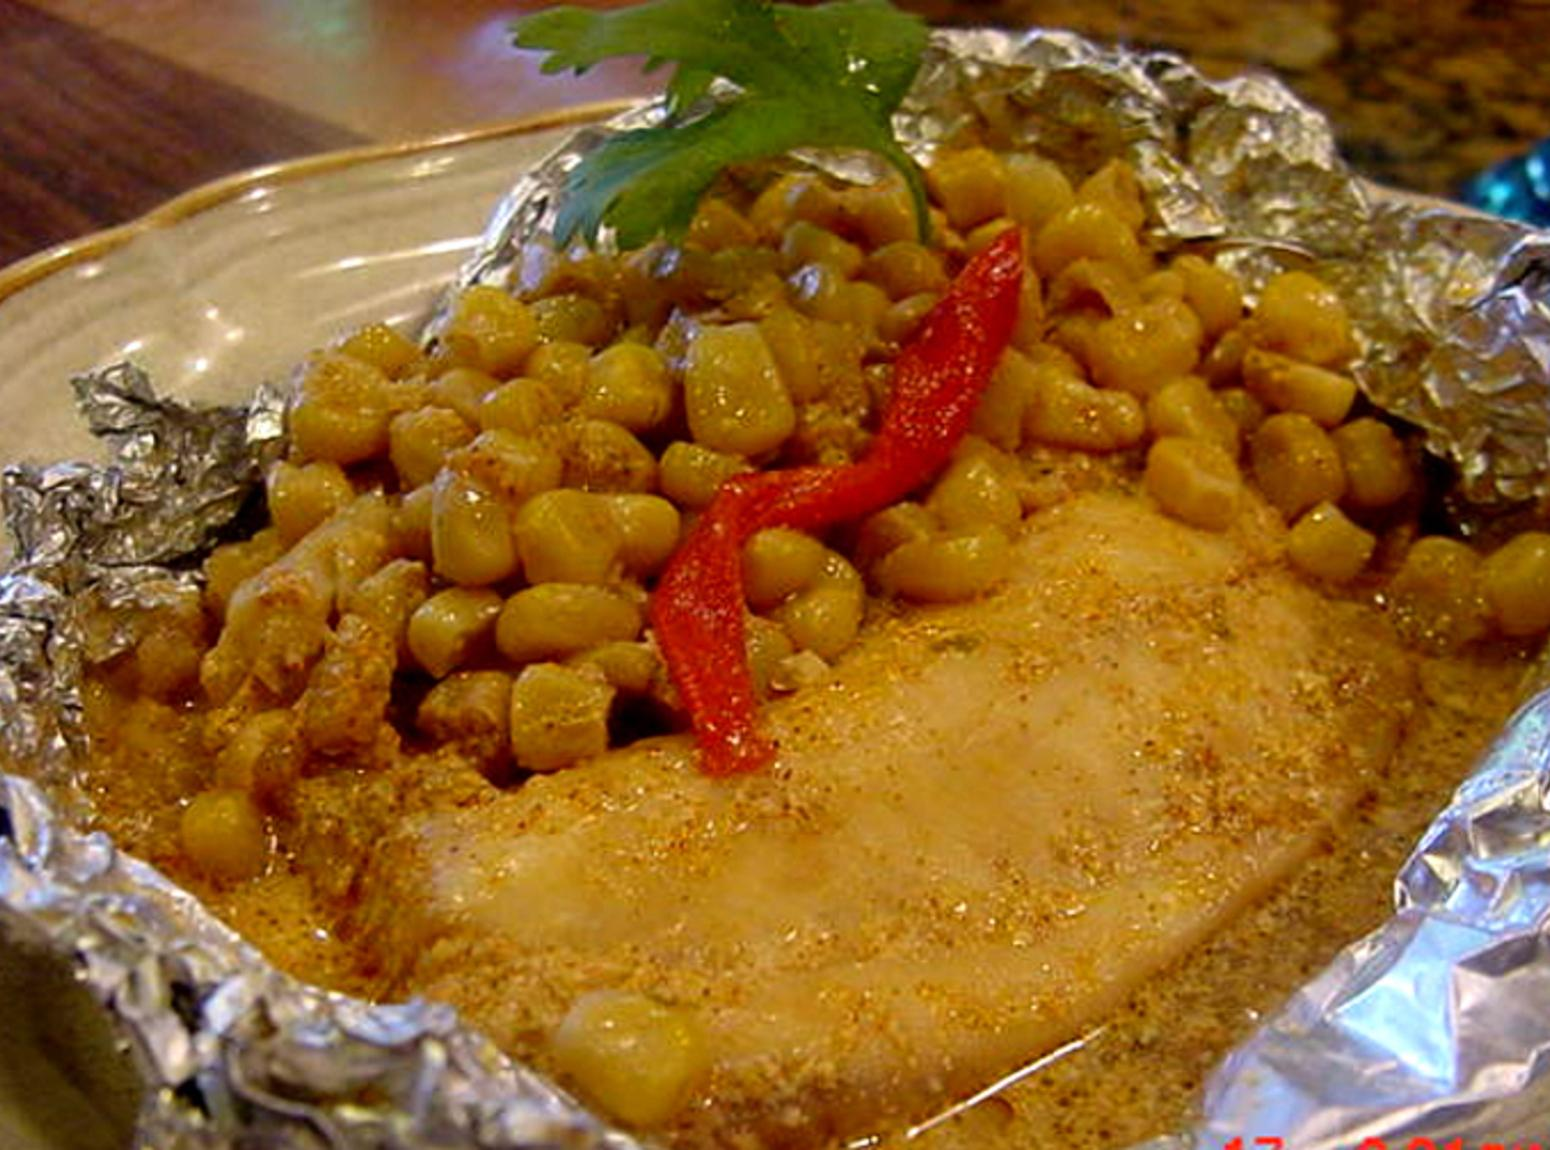 CHILI LIME TALAPIA -- BONNIE'S SLOW COOKER RECIPE